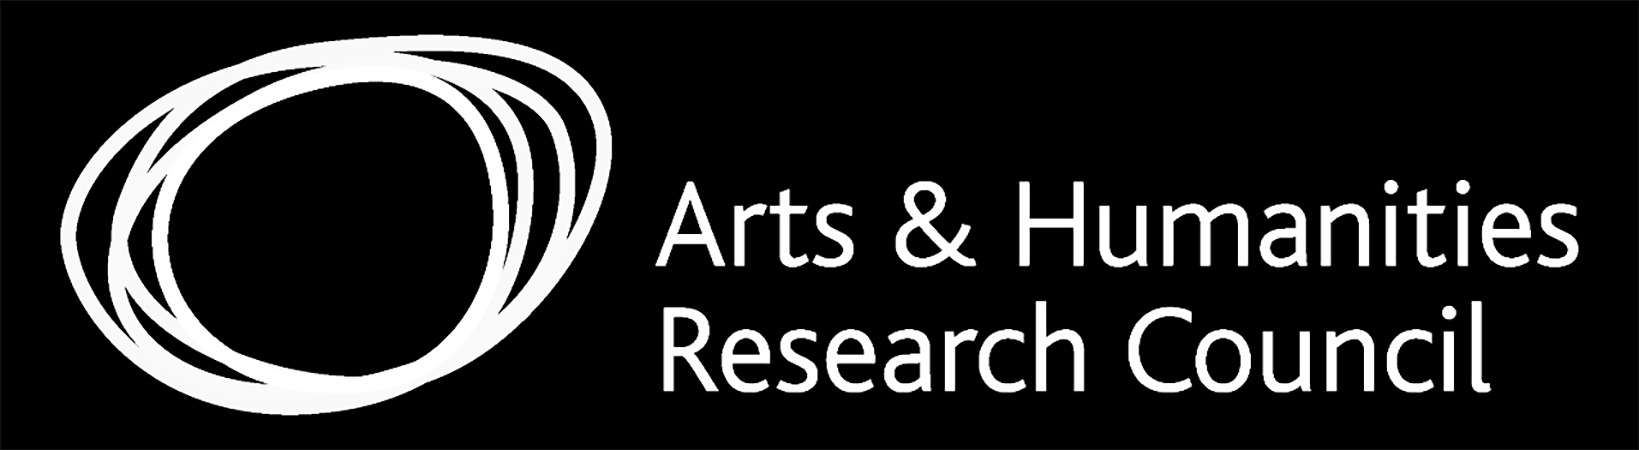 Art & Humanities Research Council